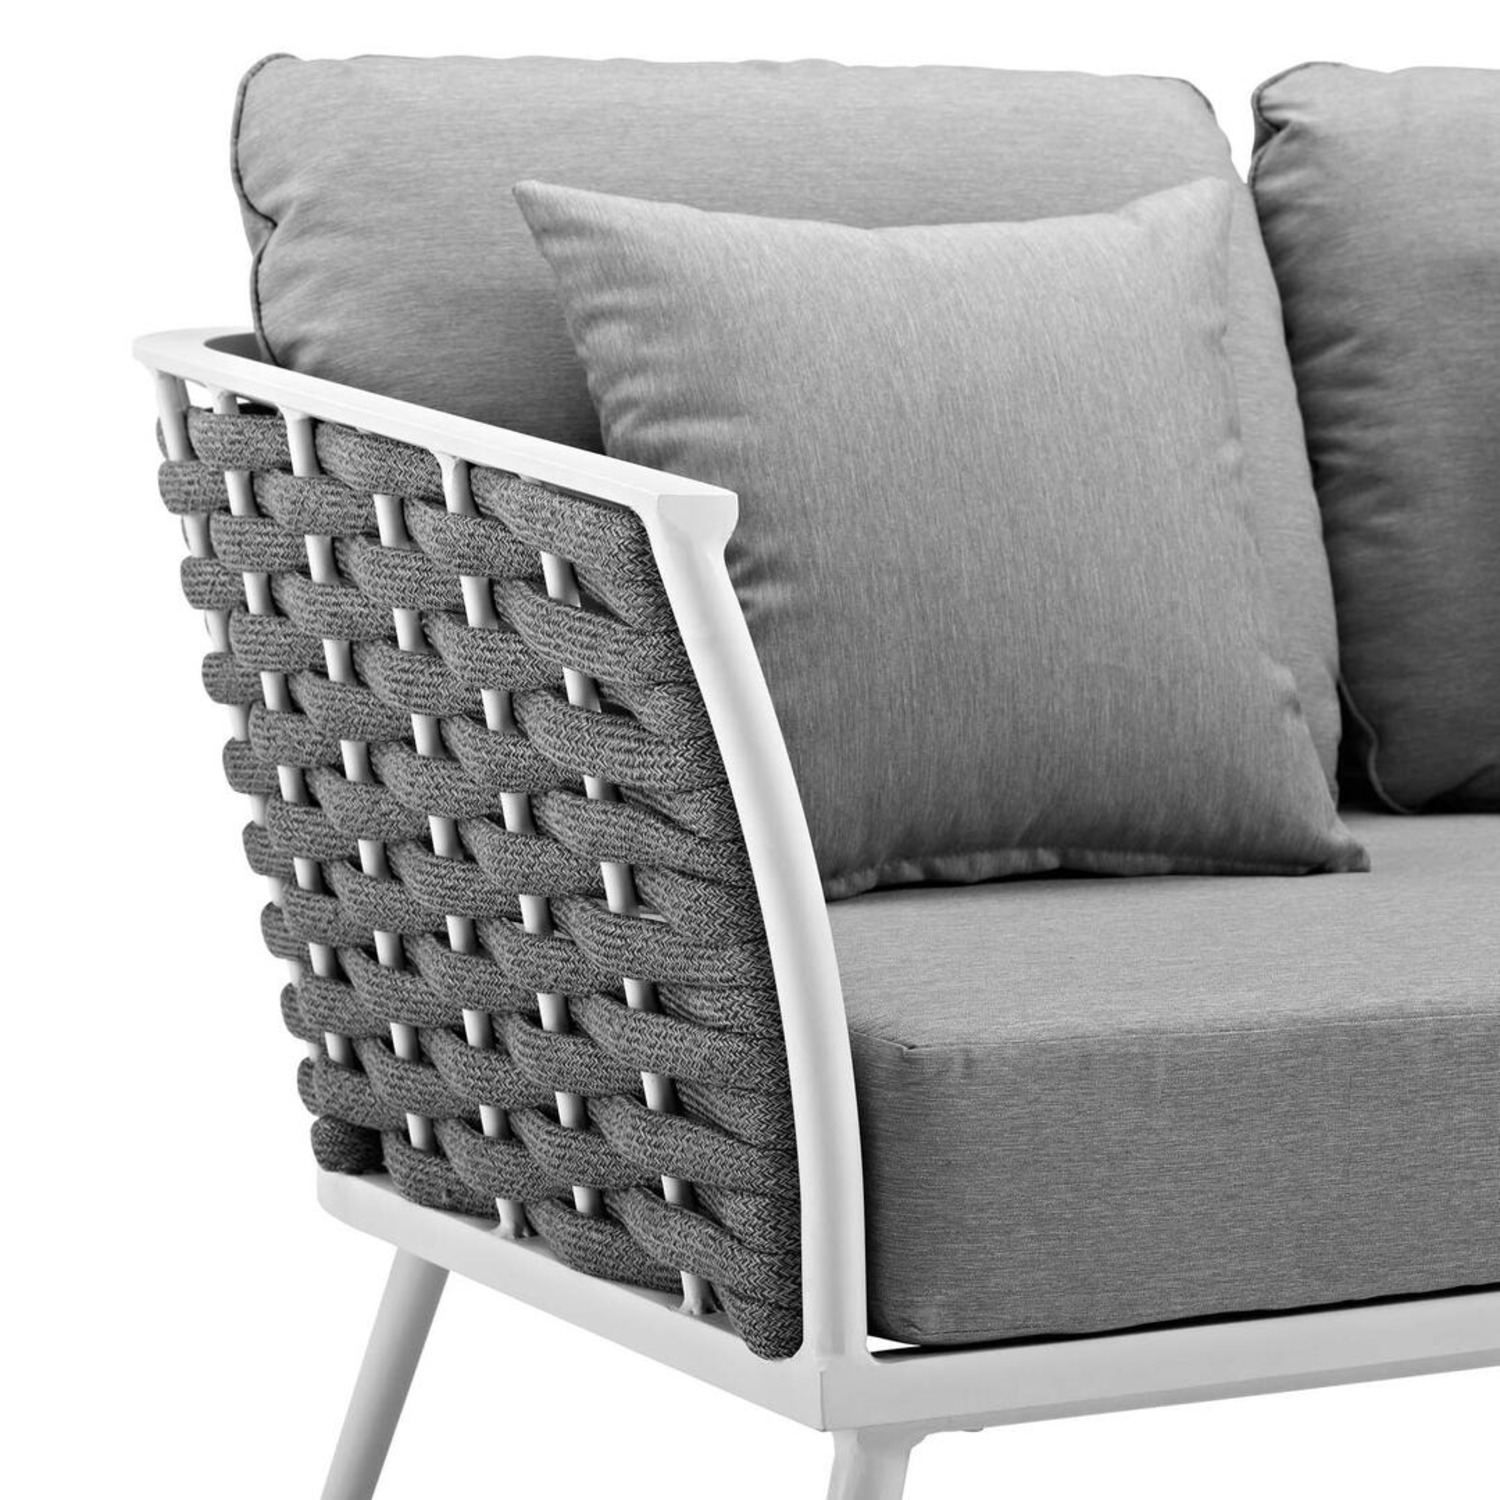 Outdoor Loveseat In Gray Fabric Rope & White Frame - image-3